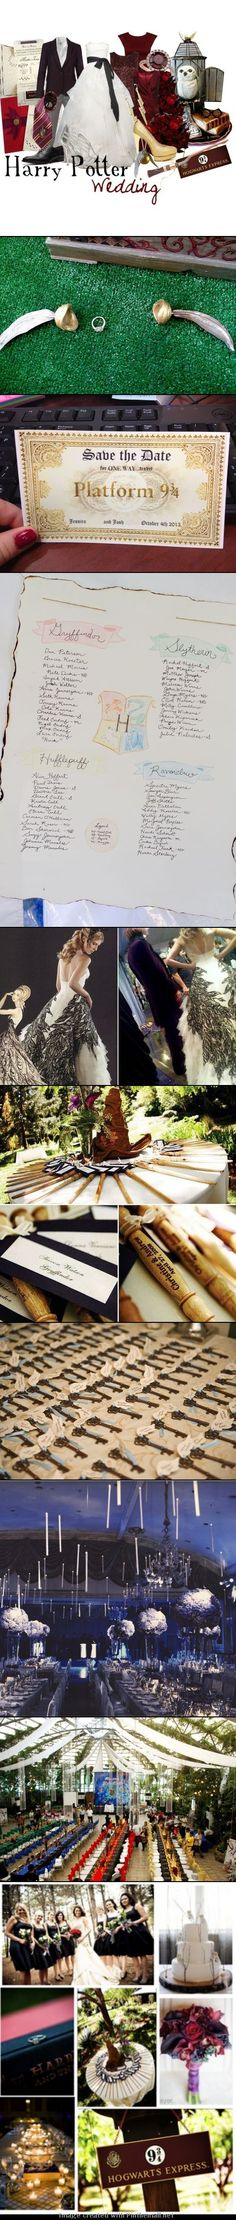 Harry Potter wedding.